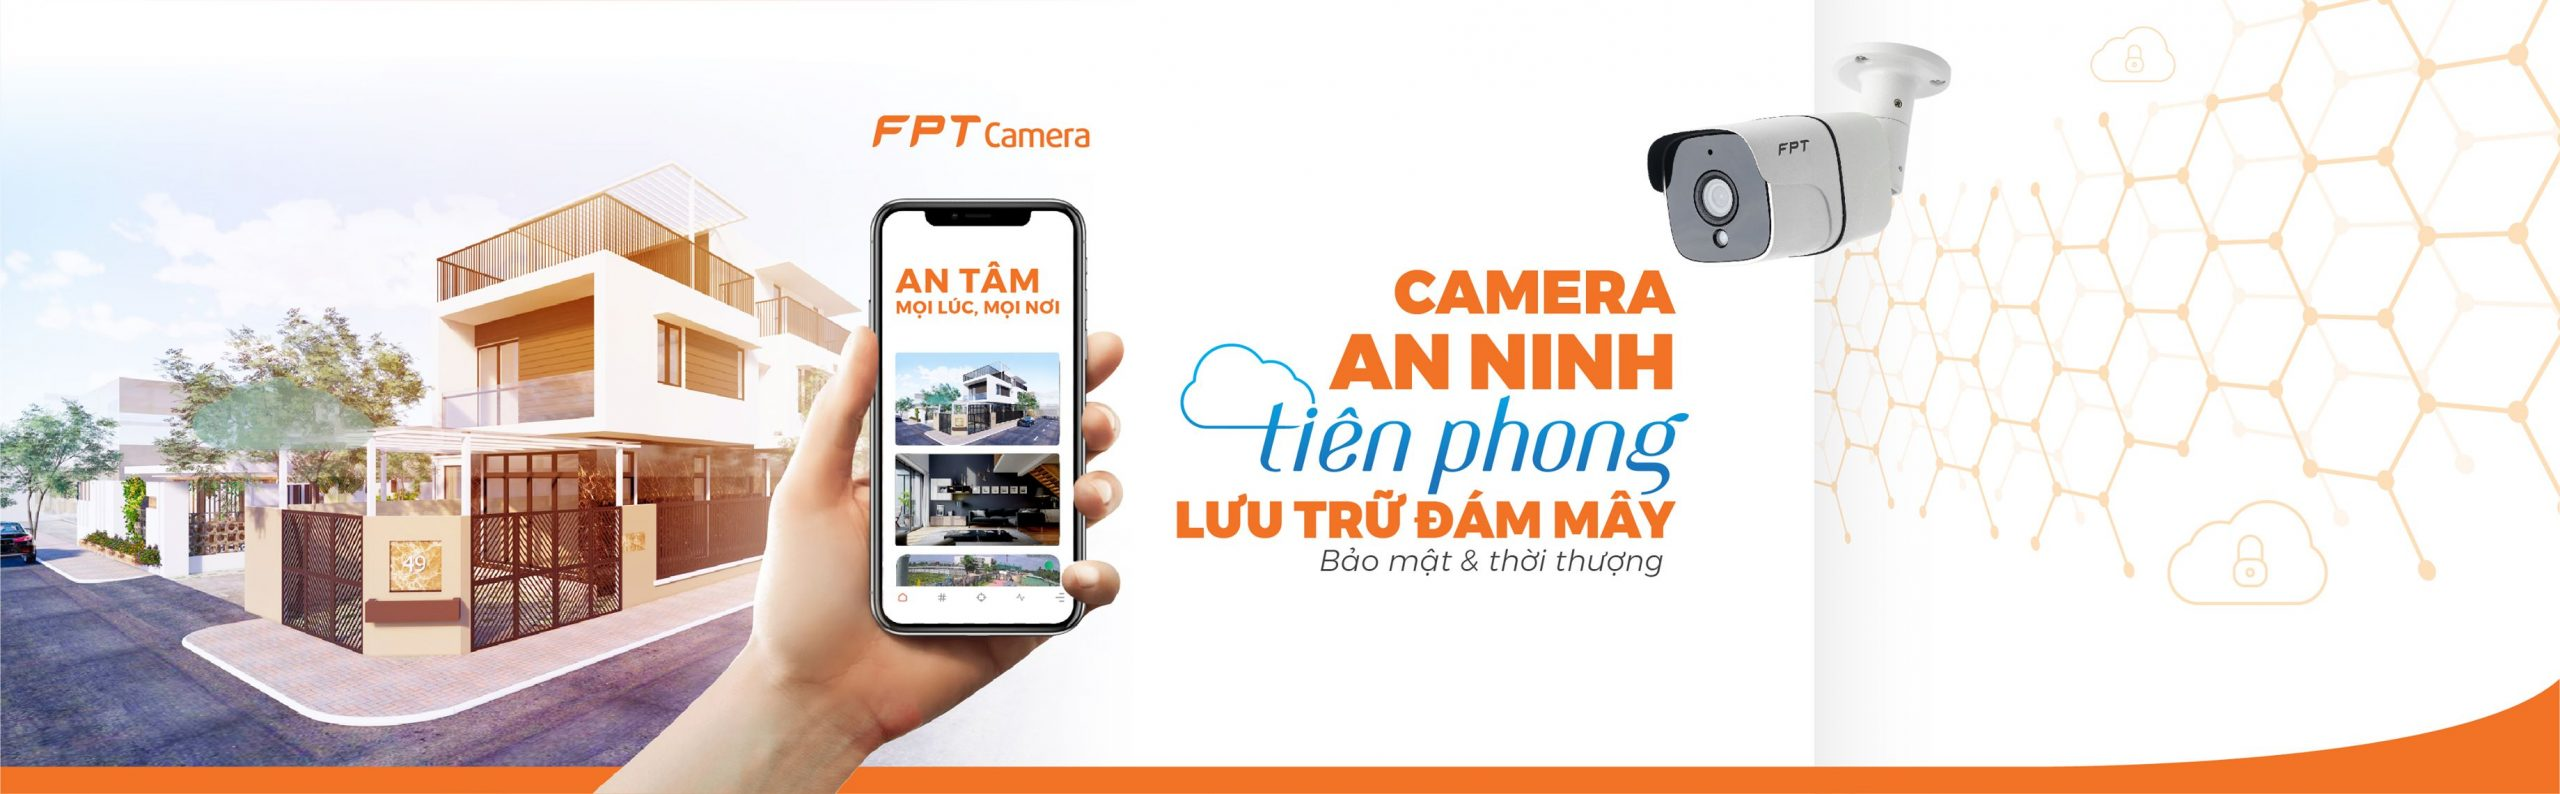 lapwififpt.com.vn-banner-camera